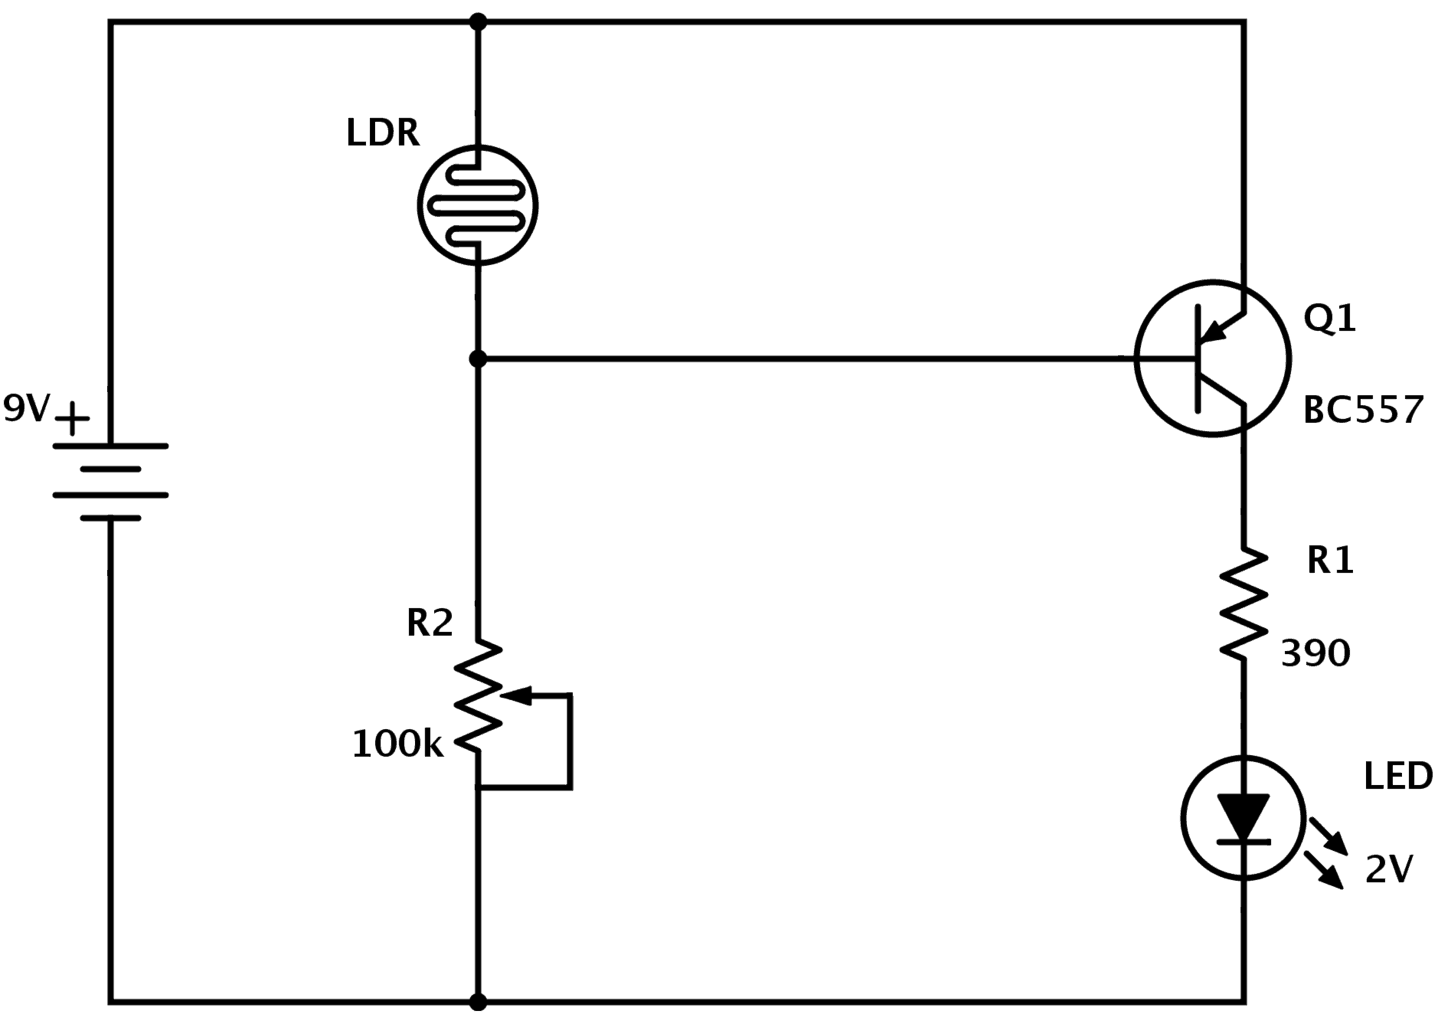 hight resolution of ldr circuit diagram build electronic circuits flashing led using ldr schematic diagram